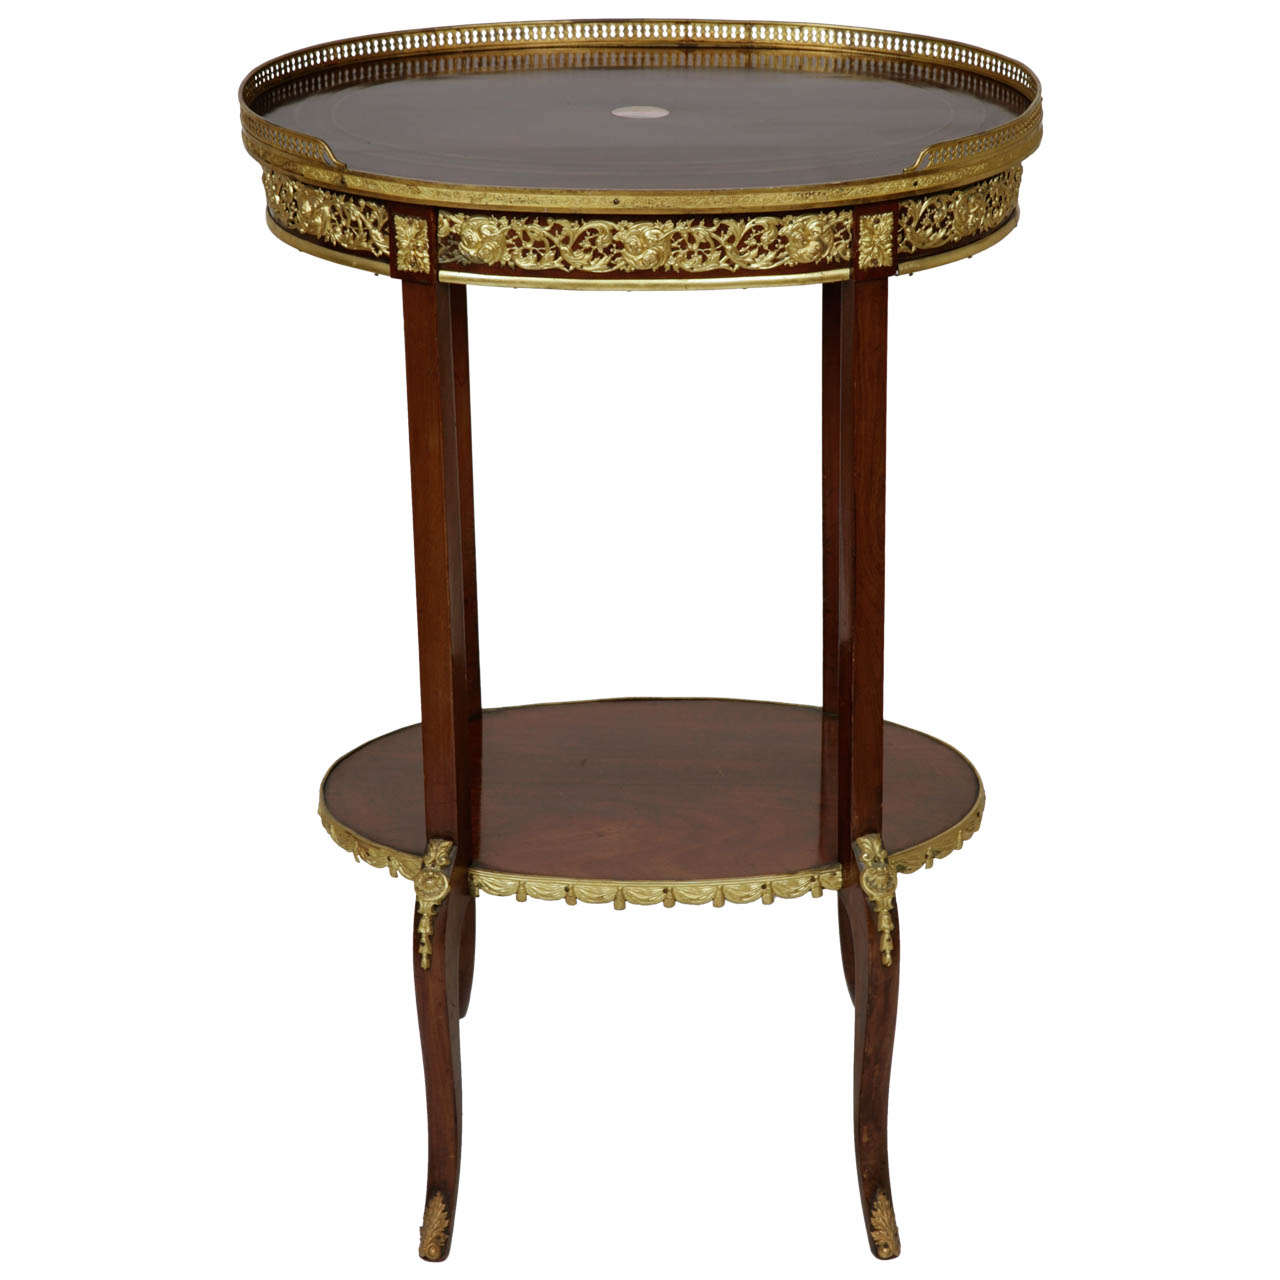 Transitional Style OrmoluMounted Mahogany Oval Shaped TwoTiered Table For S -> Table Oval Laque